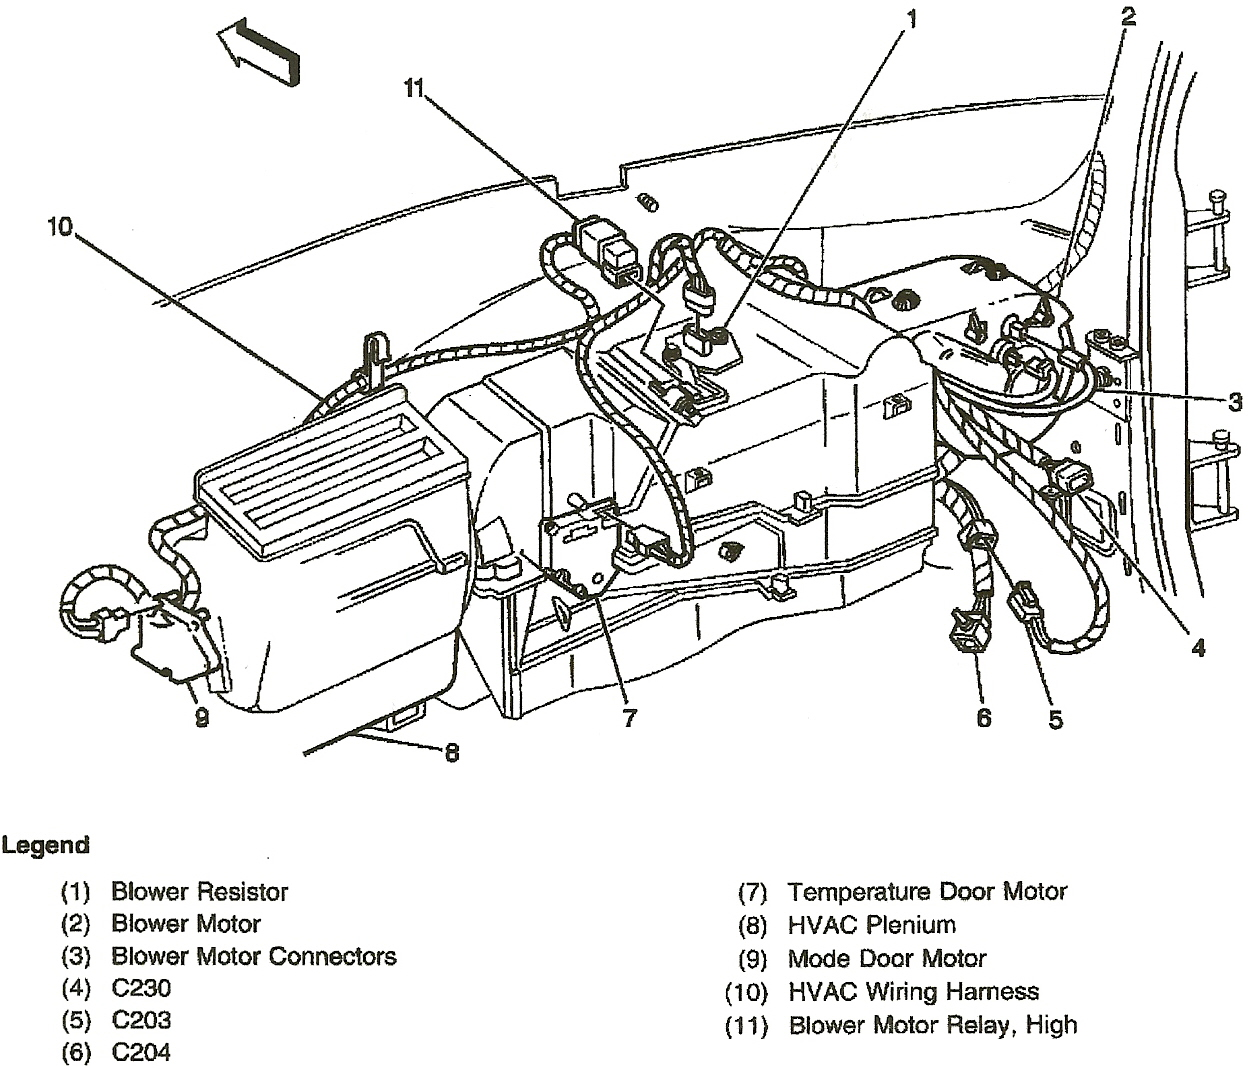 Luxury ac blower motor wiring diagram image the wire magnoxfo wiring diagram for ac blower motor free download wiring diagram cheapraybanclubmaster Image collections